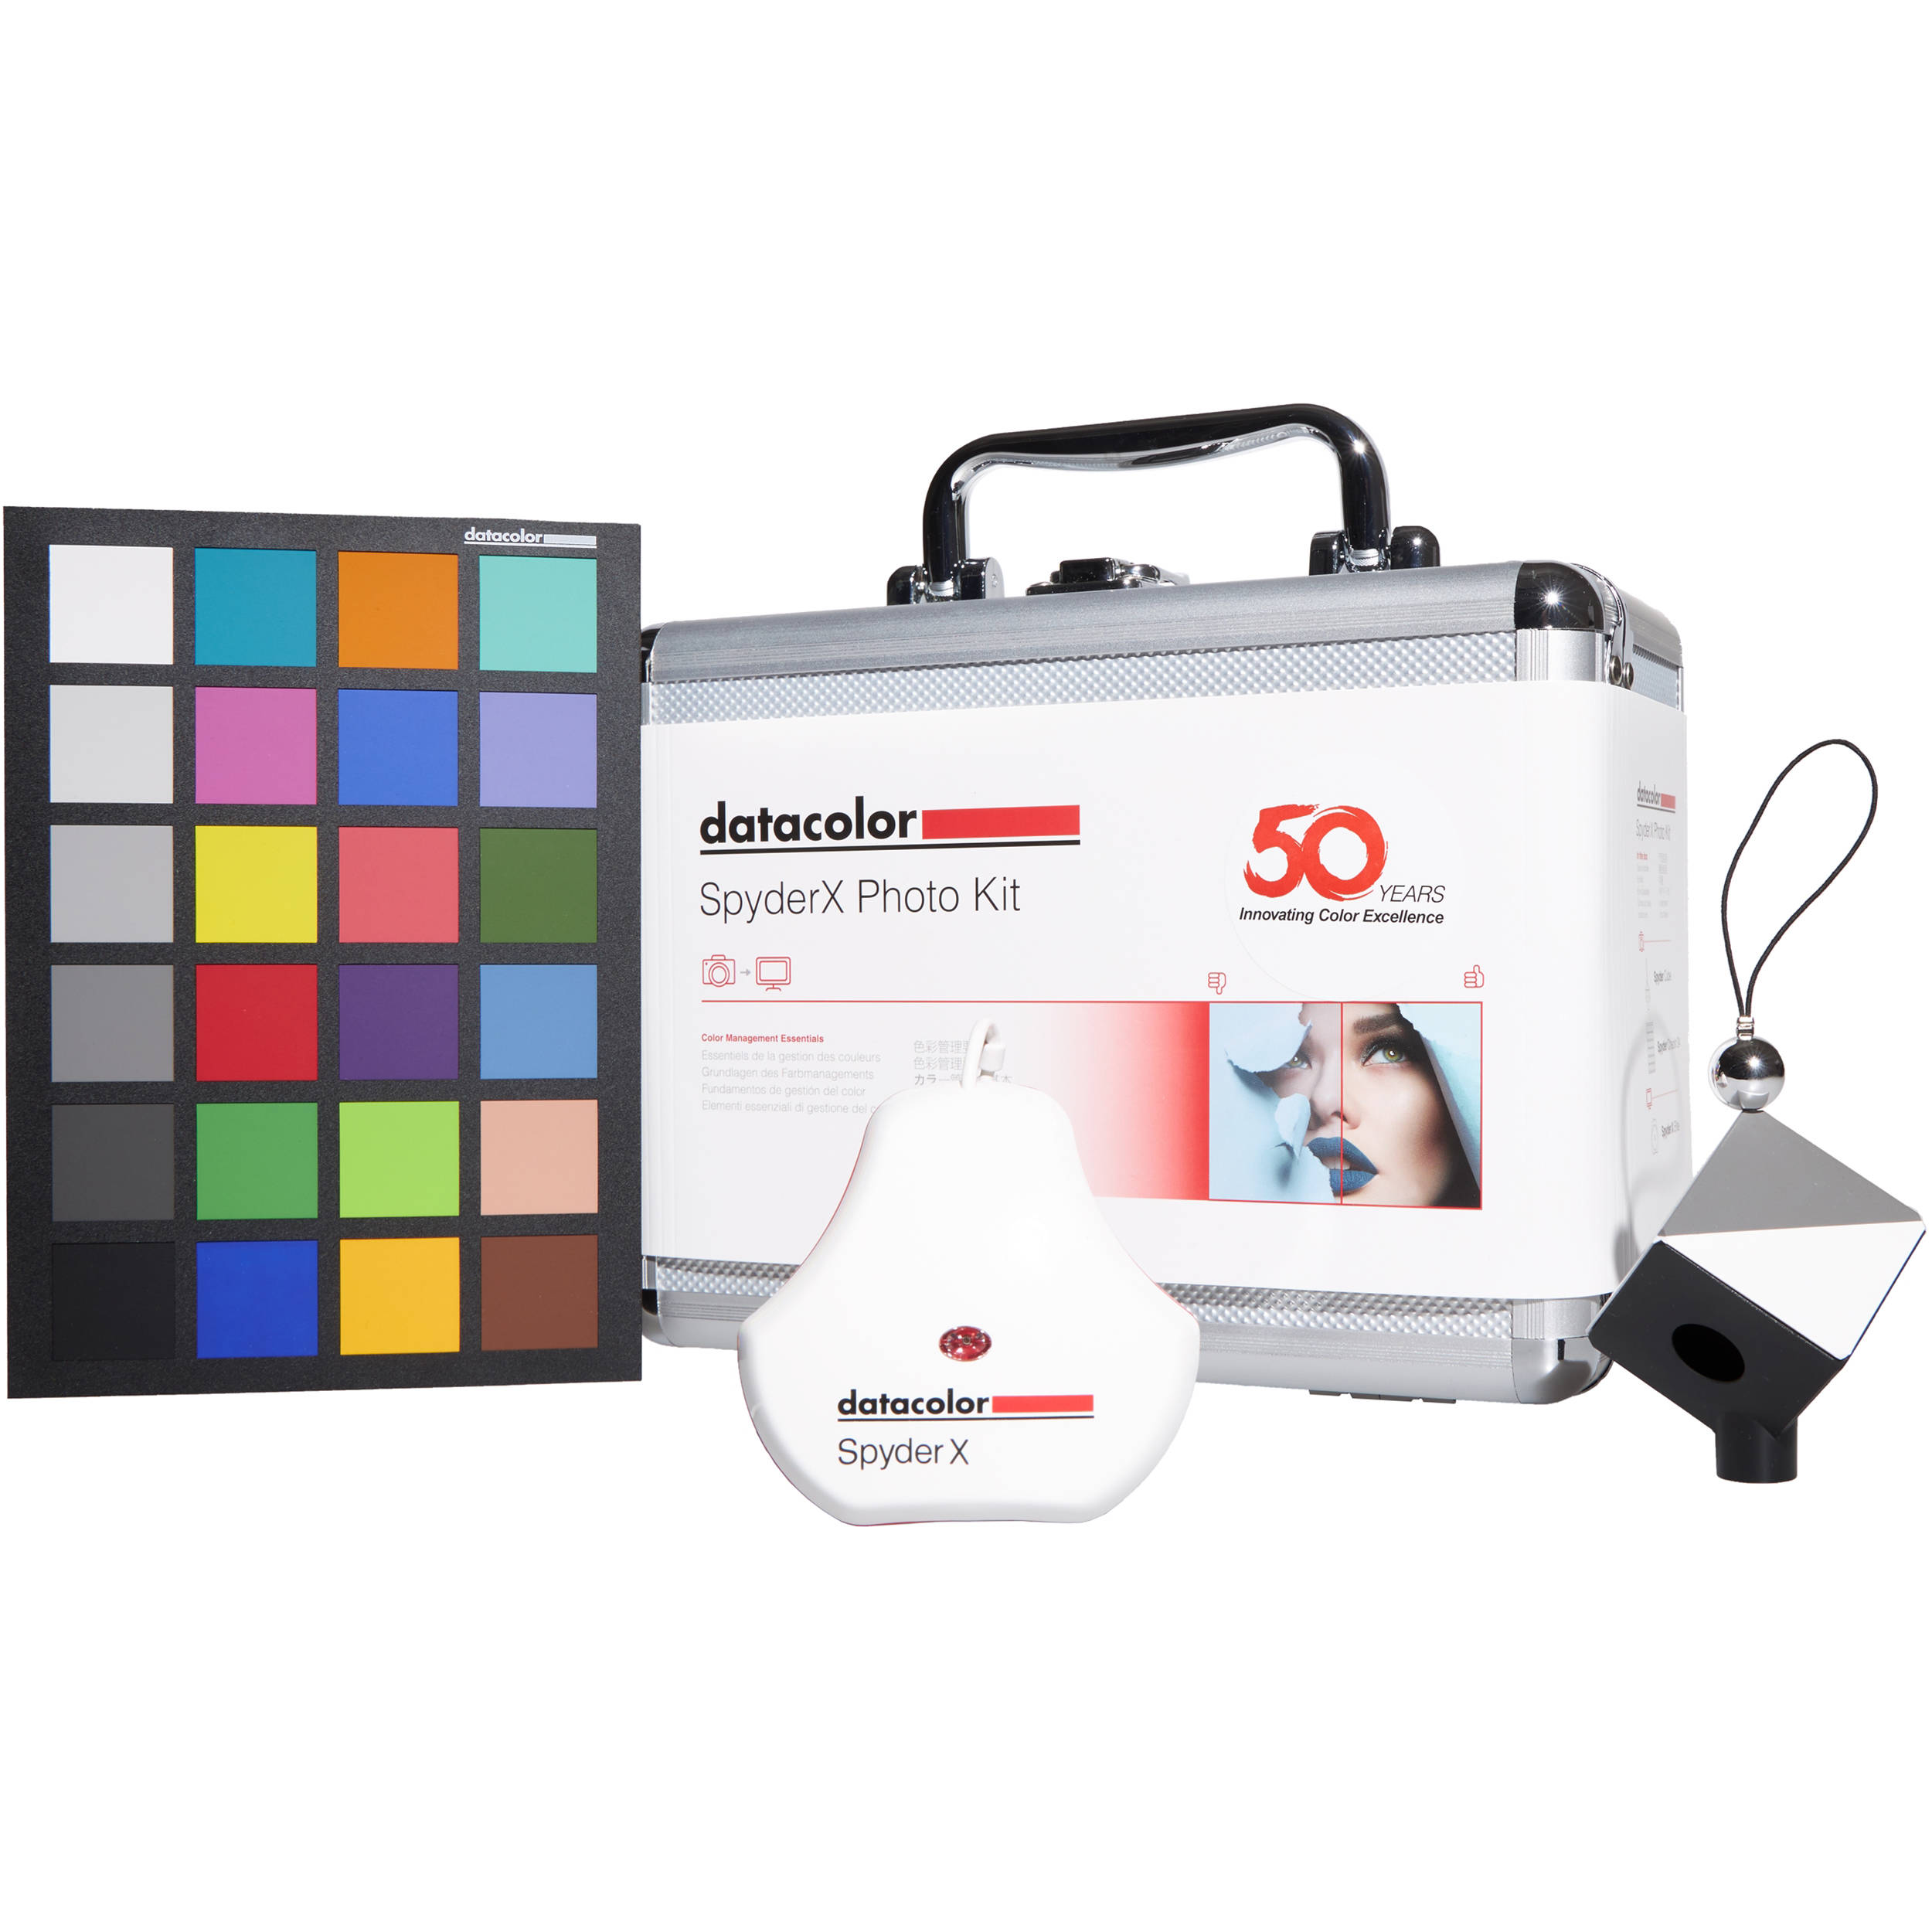 Datacolor Spyder Cube Raw Calibration Tool wiht Colorimeter & Color Chart